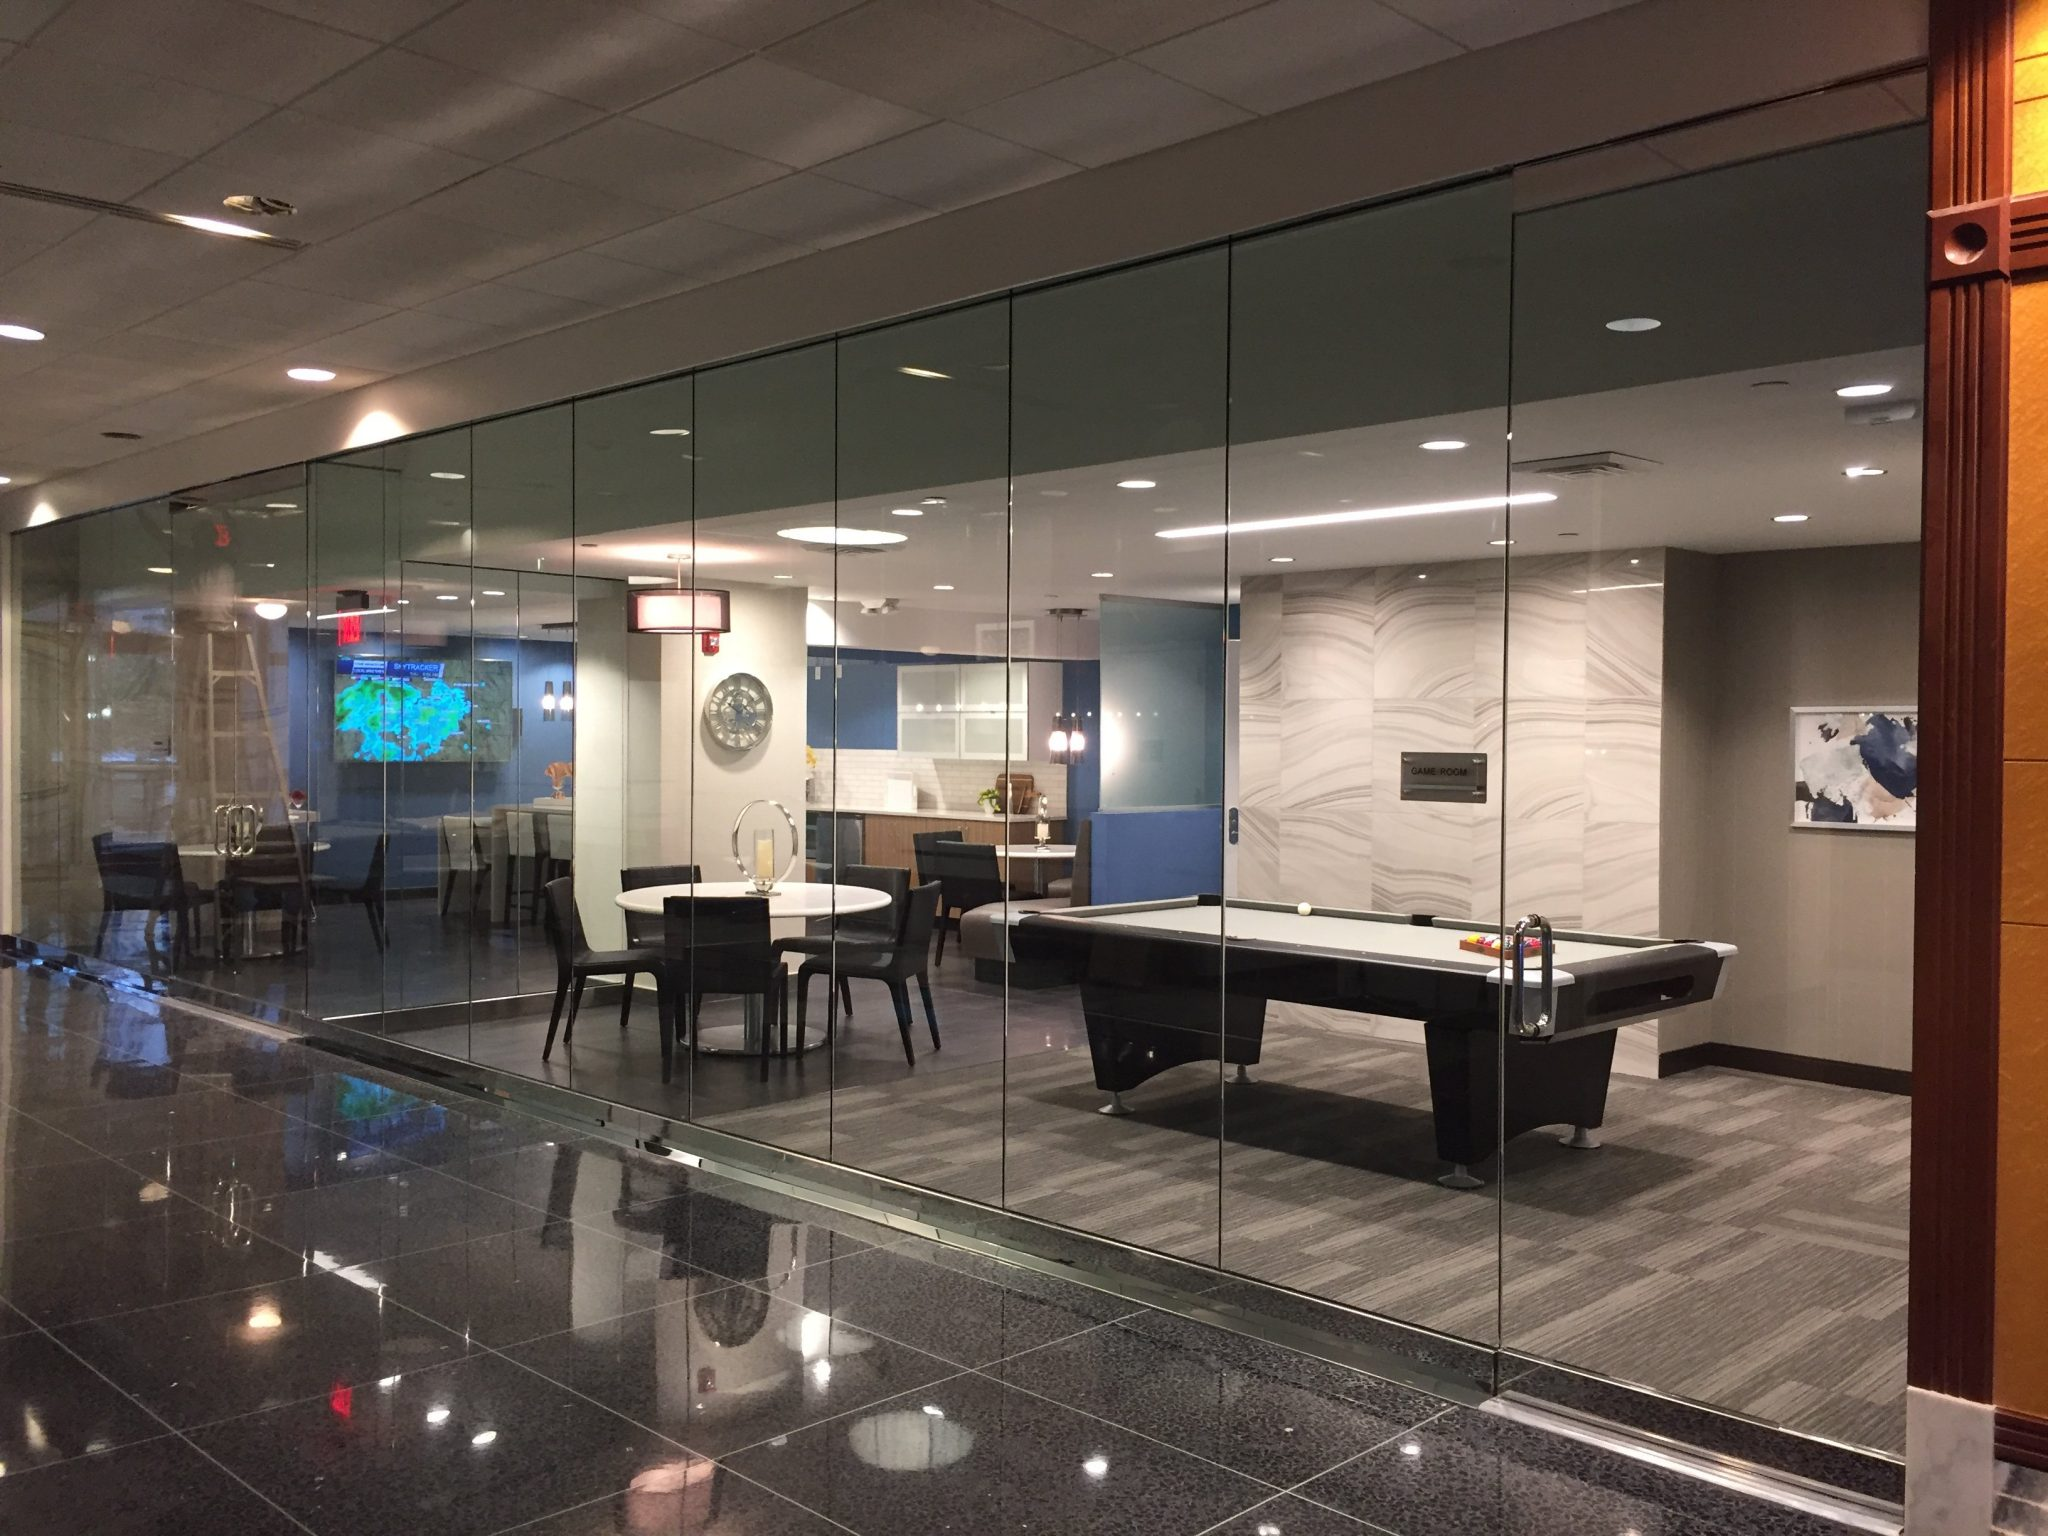 Seven Reasons to Consider Commercial Decorative Glass Film in Kansas City 2 - Decorative Window Film Kansas City